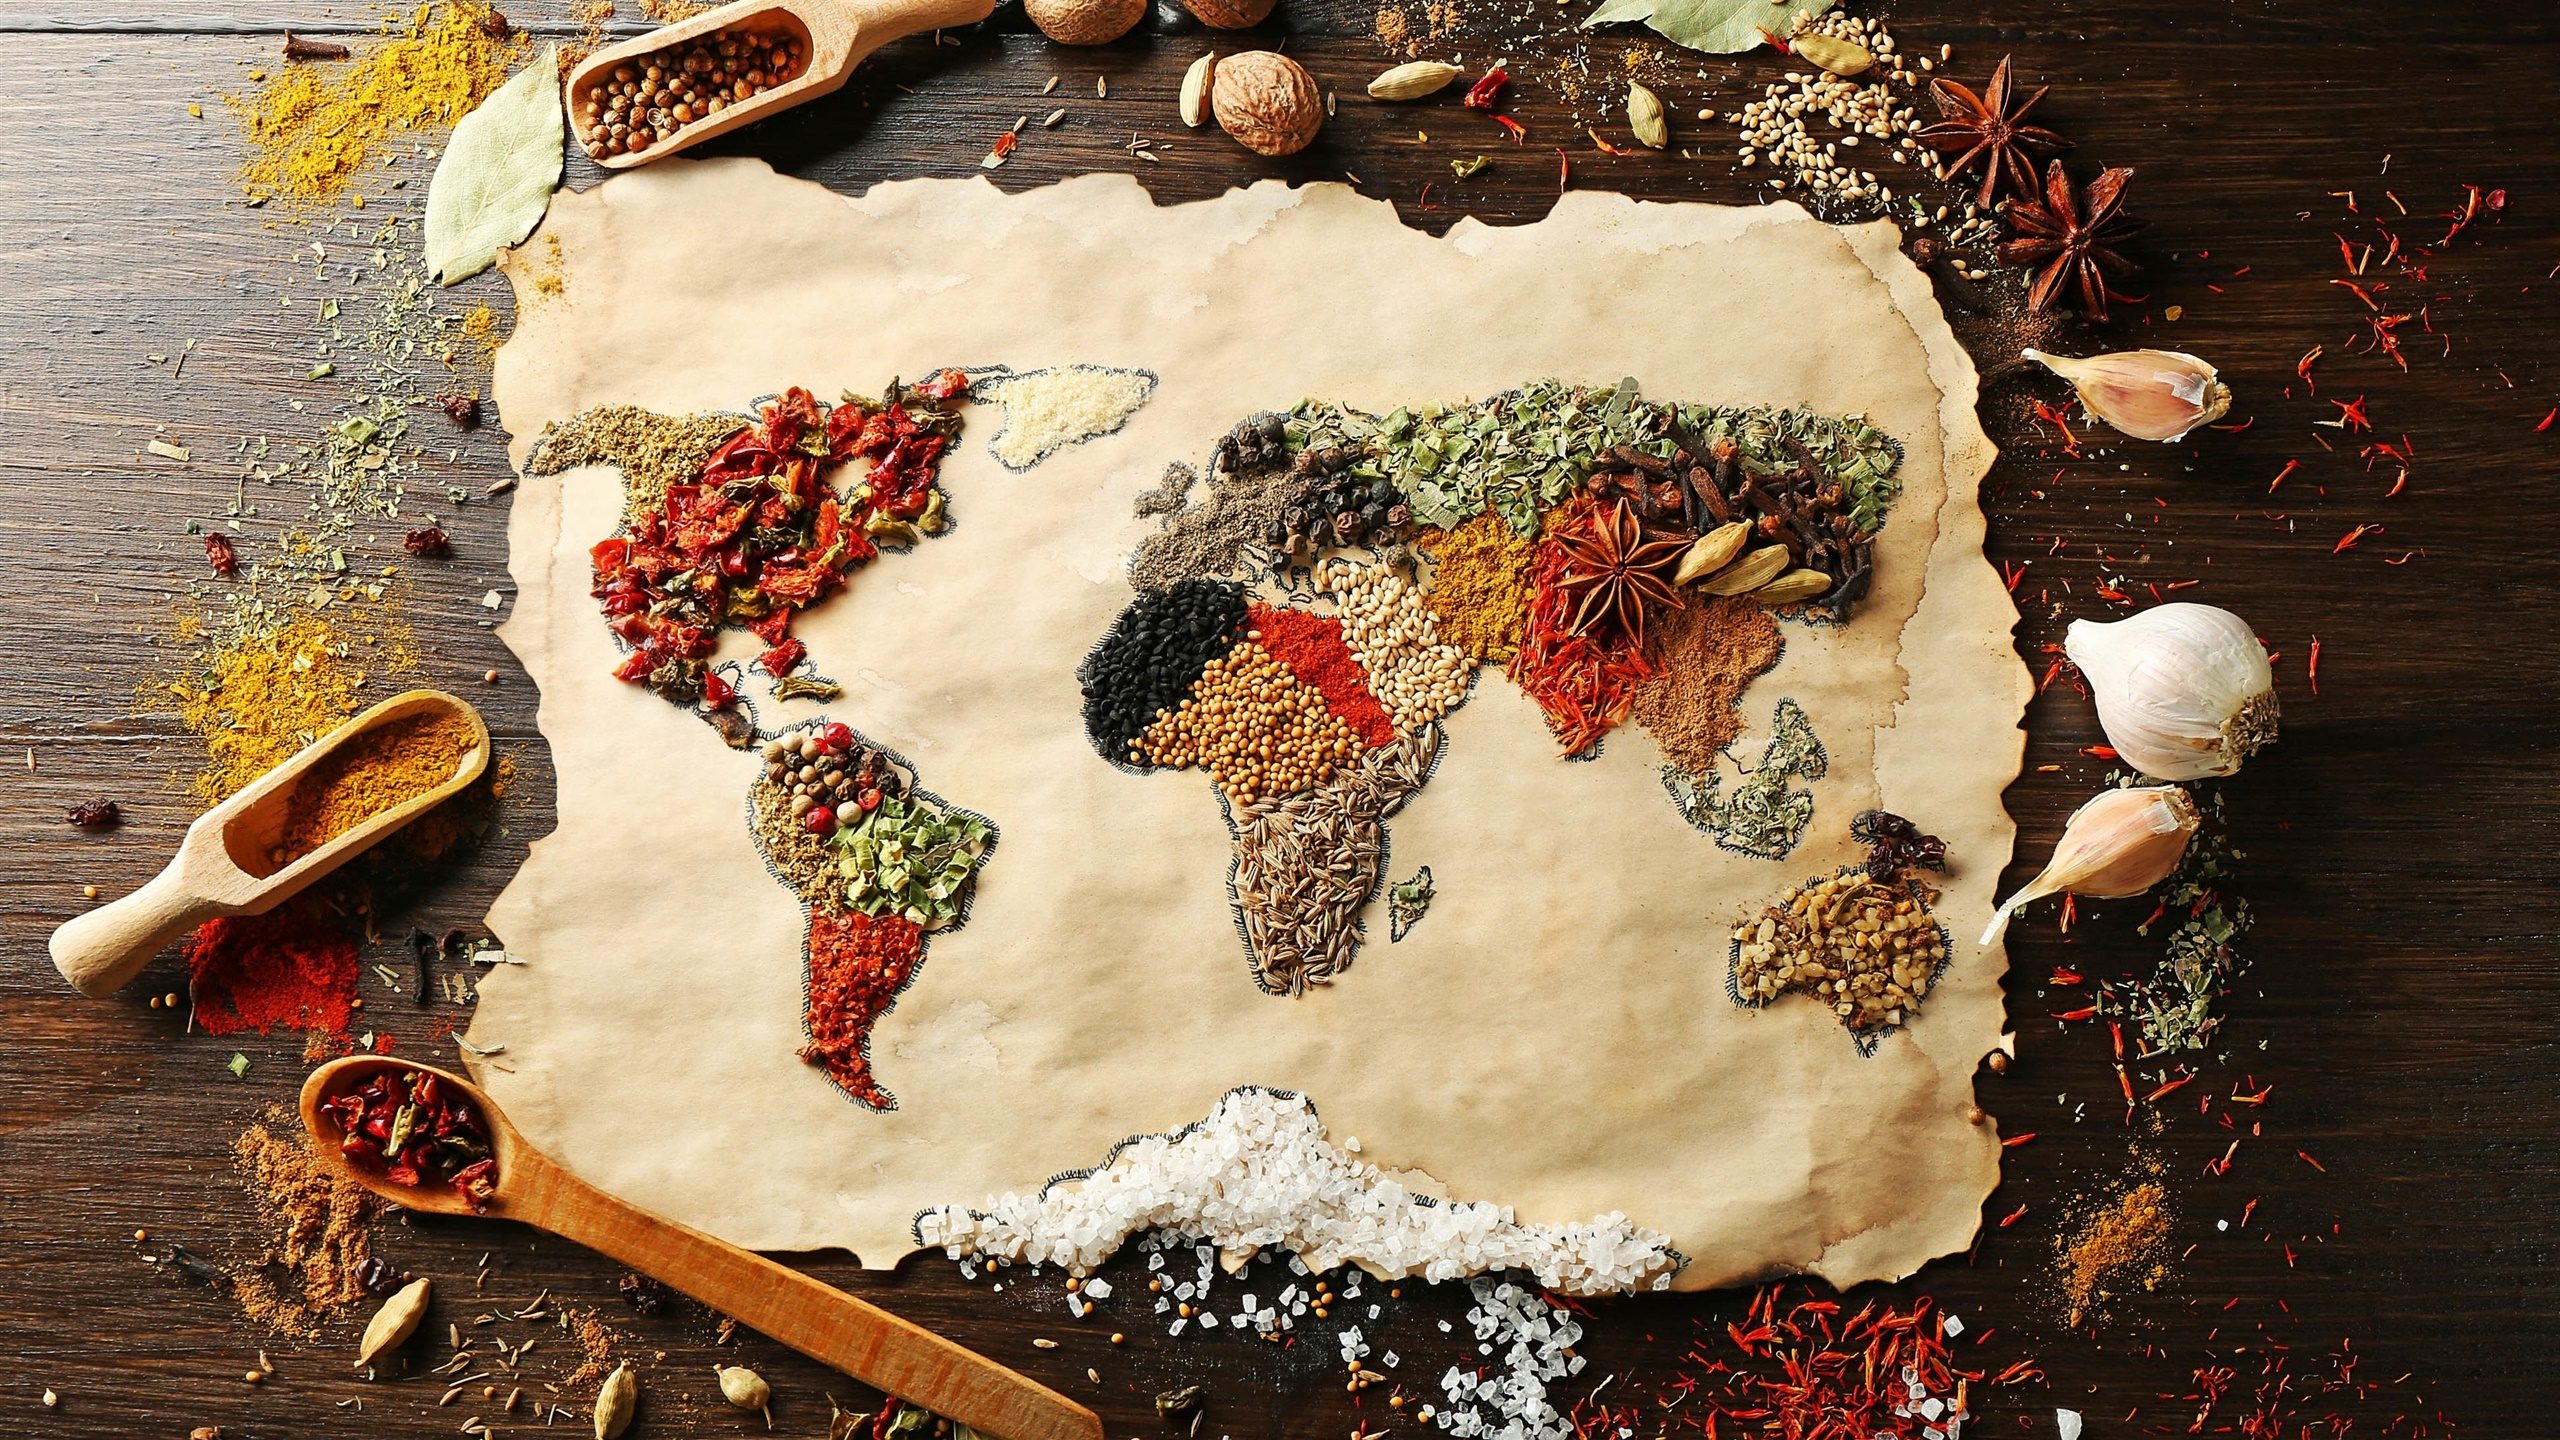 Food spices surface world map creative pictures desktop food spices surface world map creative pictures 2560x1440 wallpaper sciox Choice Image